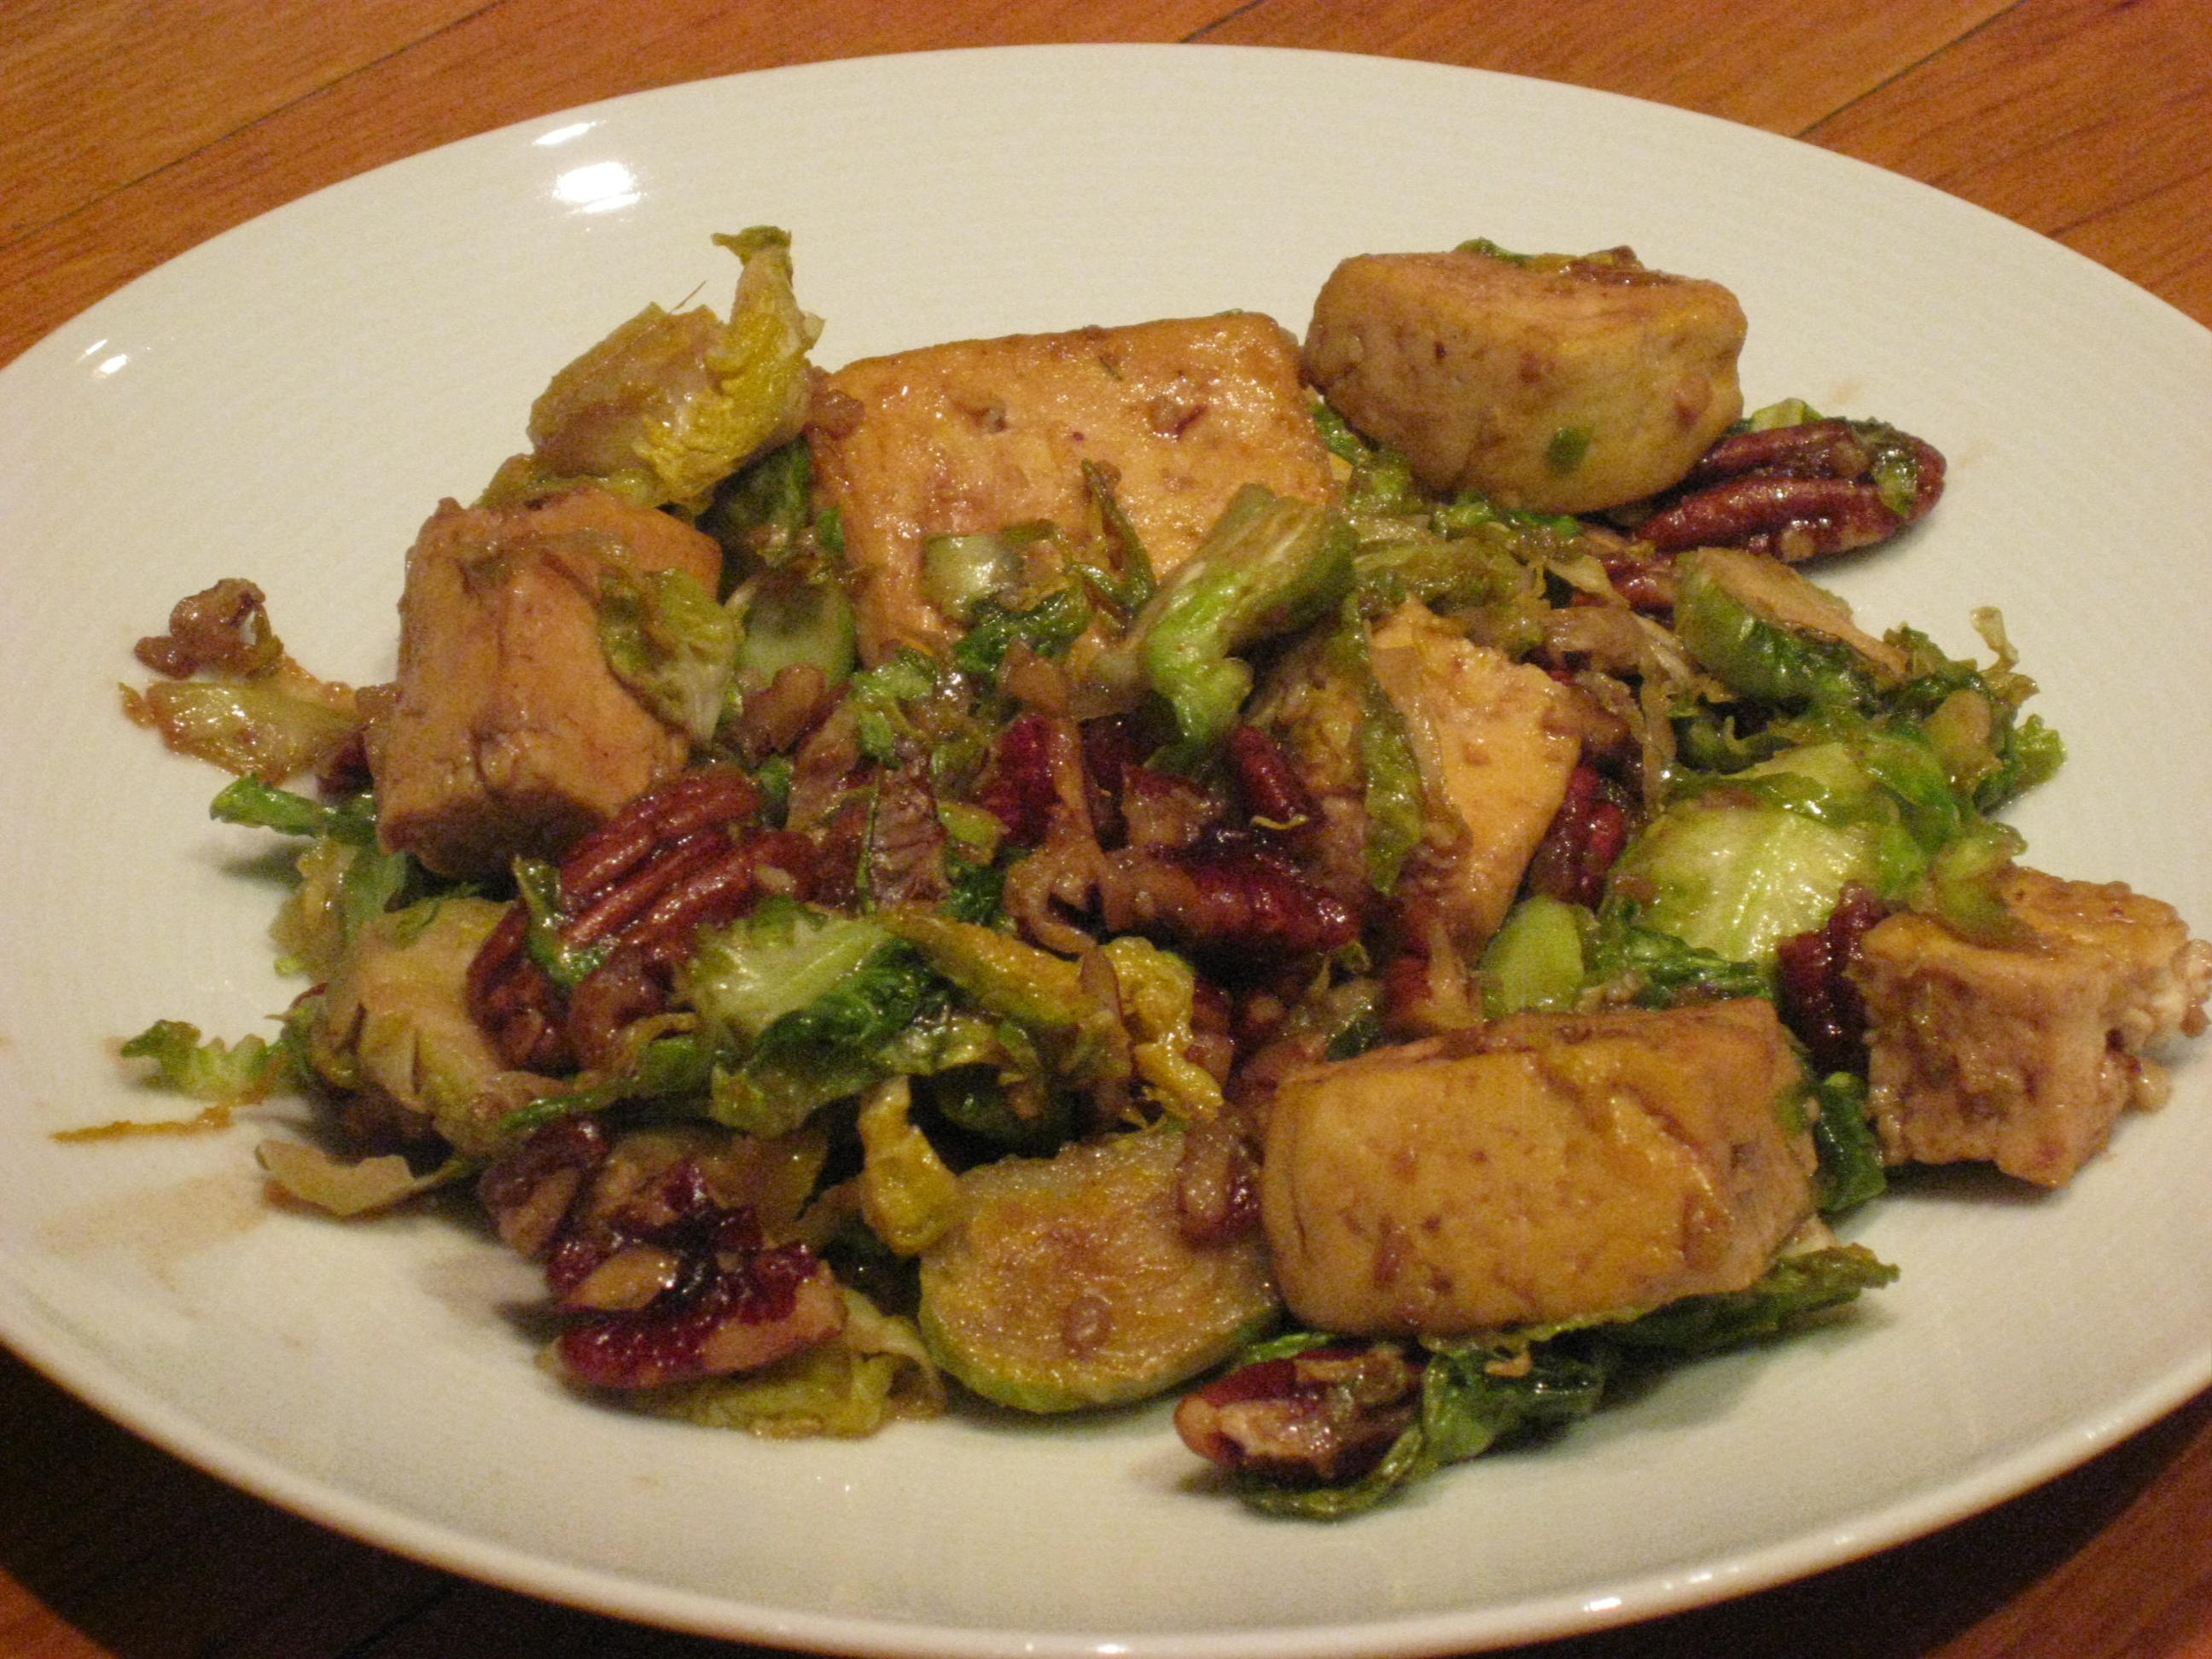 ... caramelized tofu pecans caramelized tofu tofu with brussels sprouts